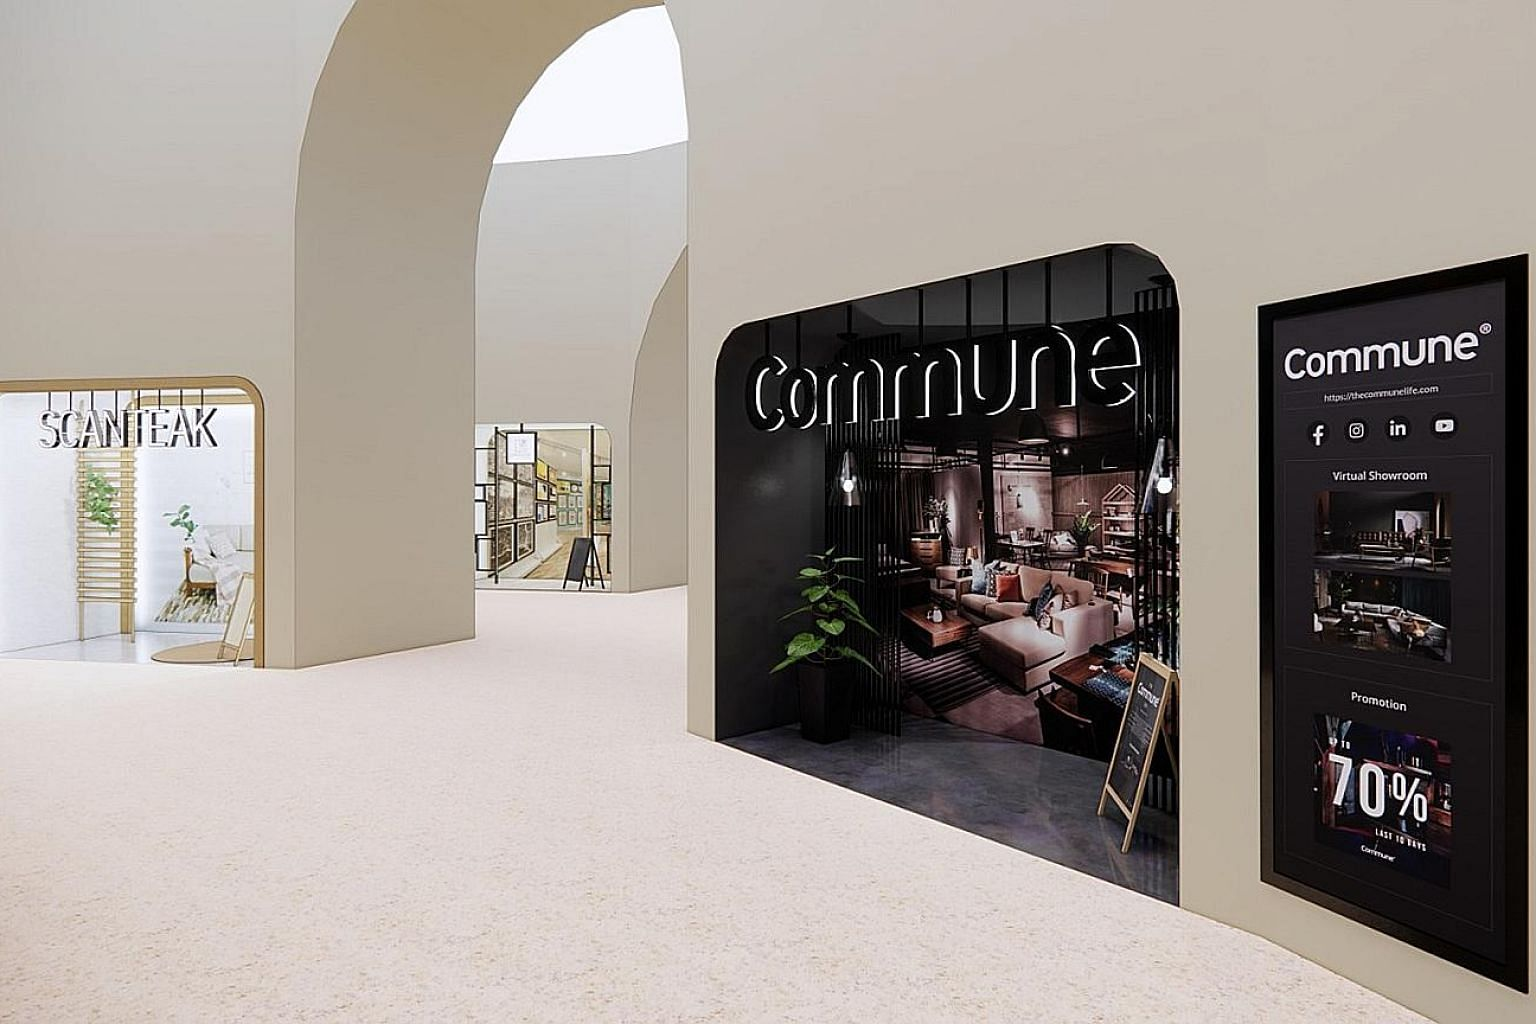 The Great Singapore Sale's virtual mall, called The Furniture Centrum, will feature showrooms for 28 local furniture brands, including Scanteak and Commune. The largely virtual GSS event takes place from today until Oct 10 on the GoSpree.sg platform.